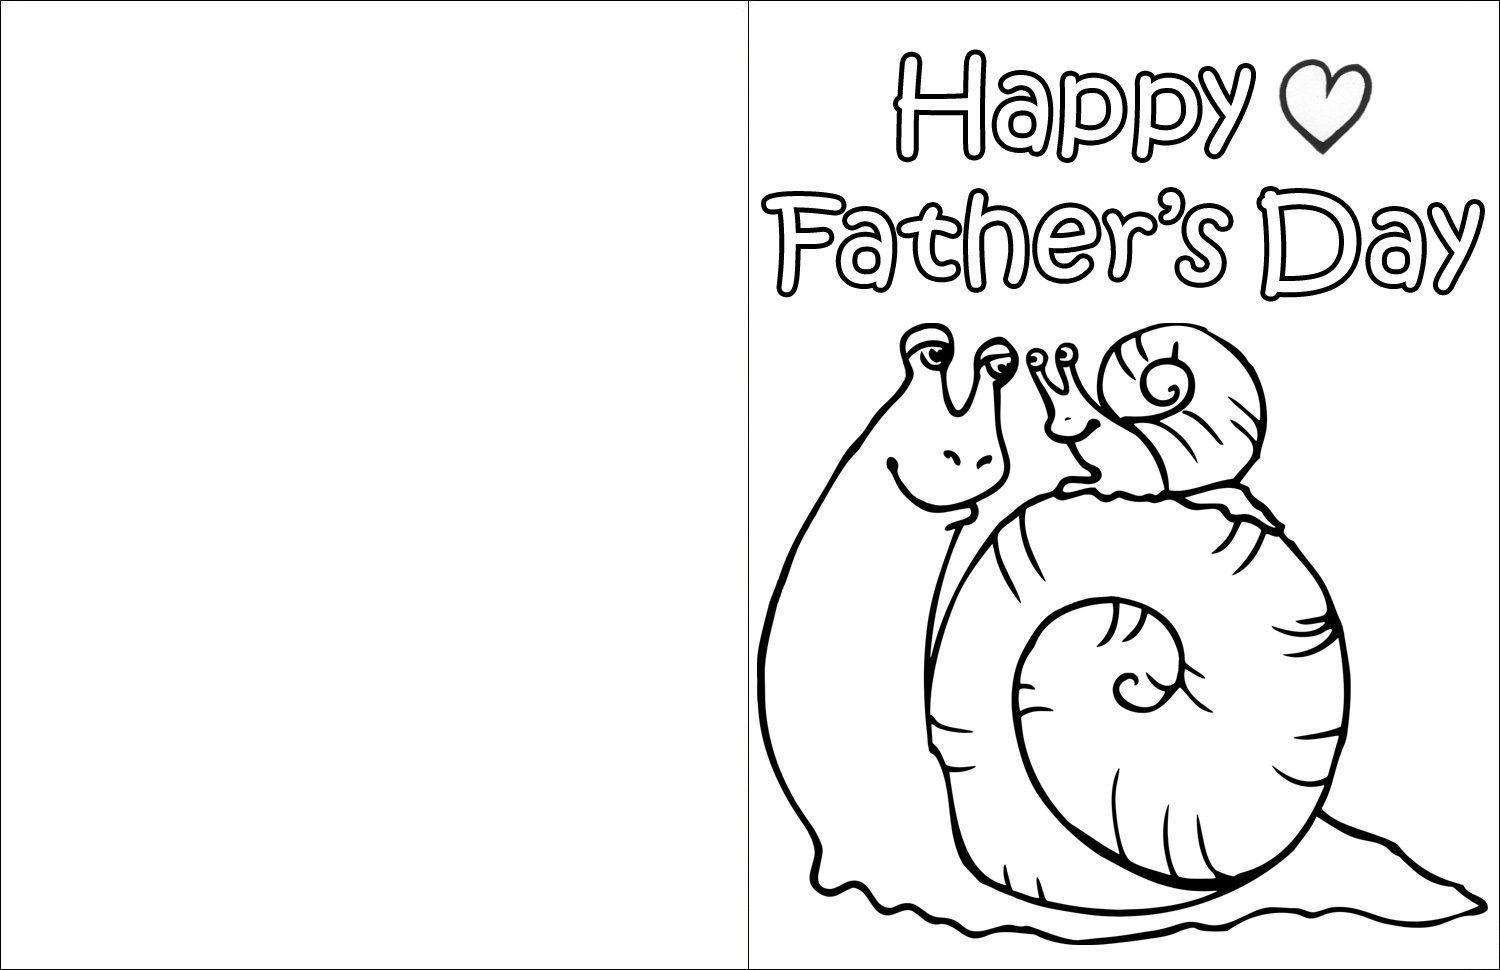 Printable Father's Day card for kids to colour in, picturing Dad and Baby Snail